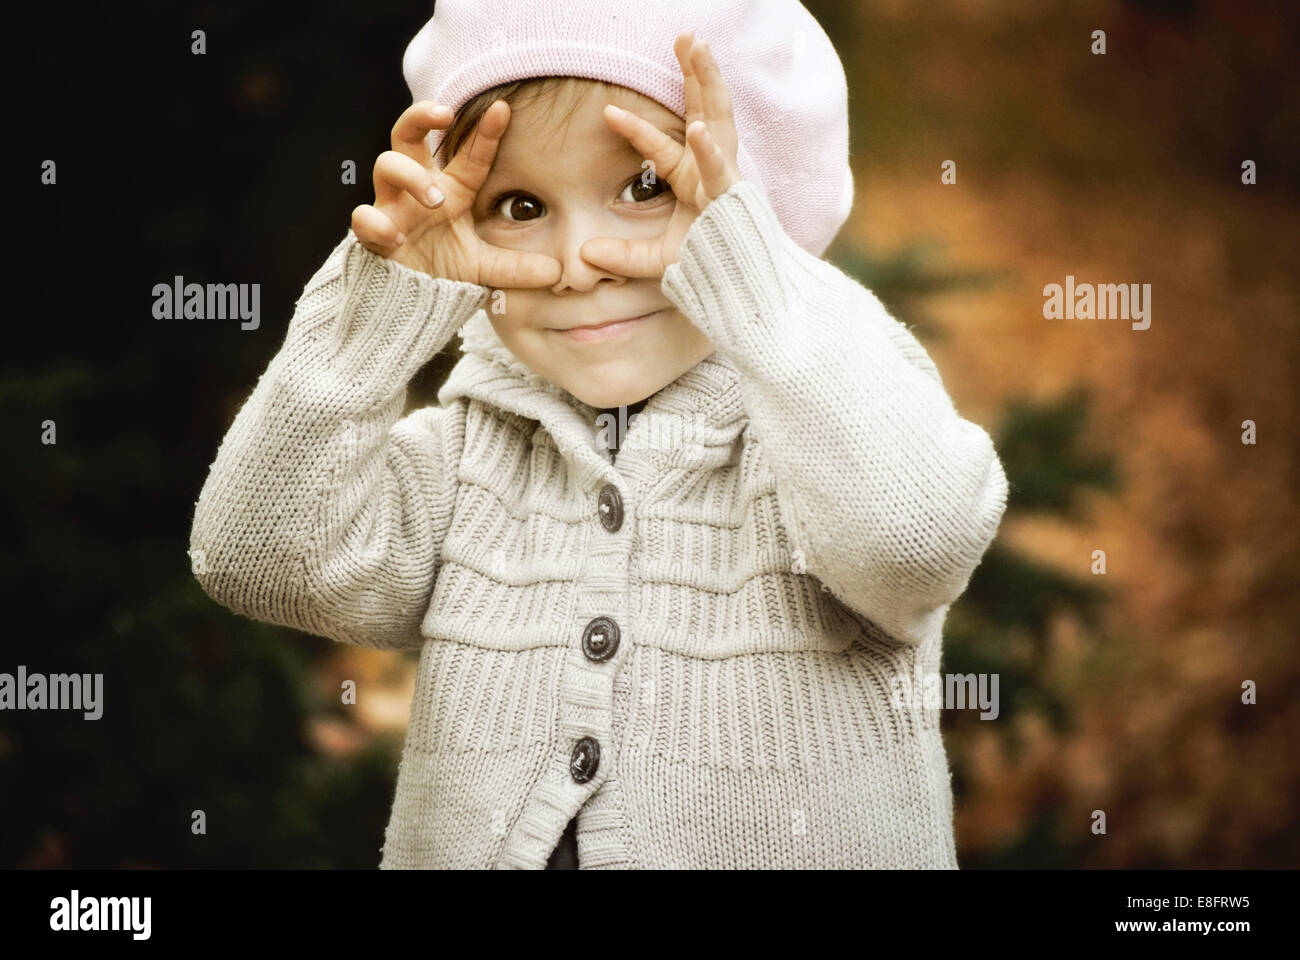 Child framing face with hands - Stock Image